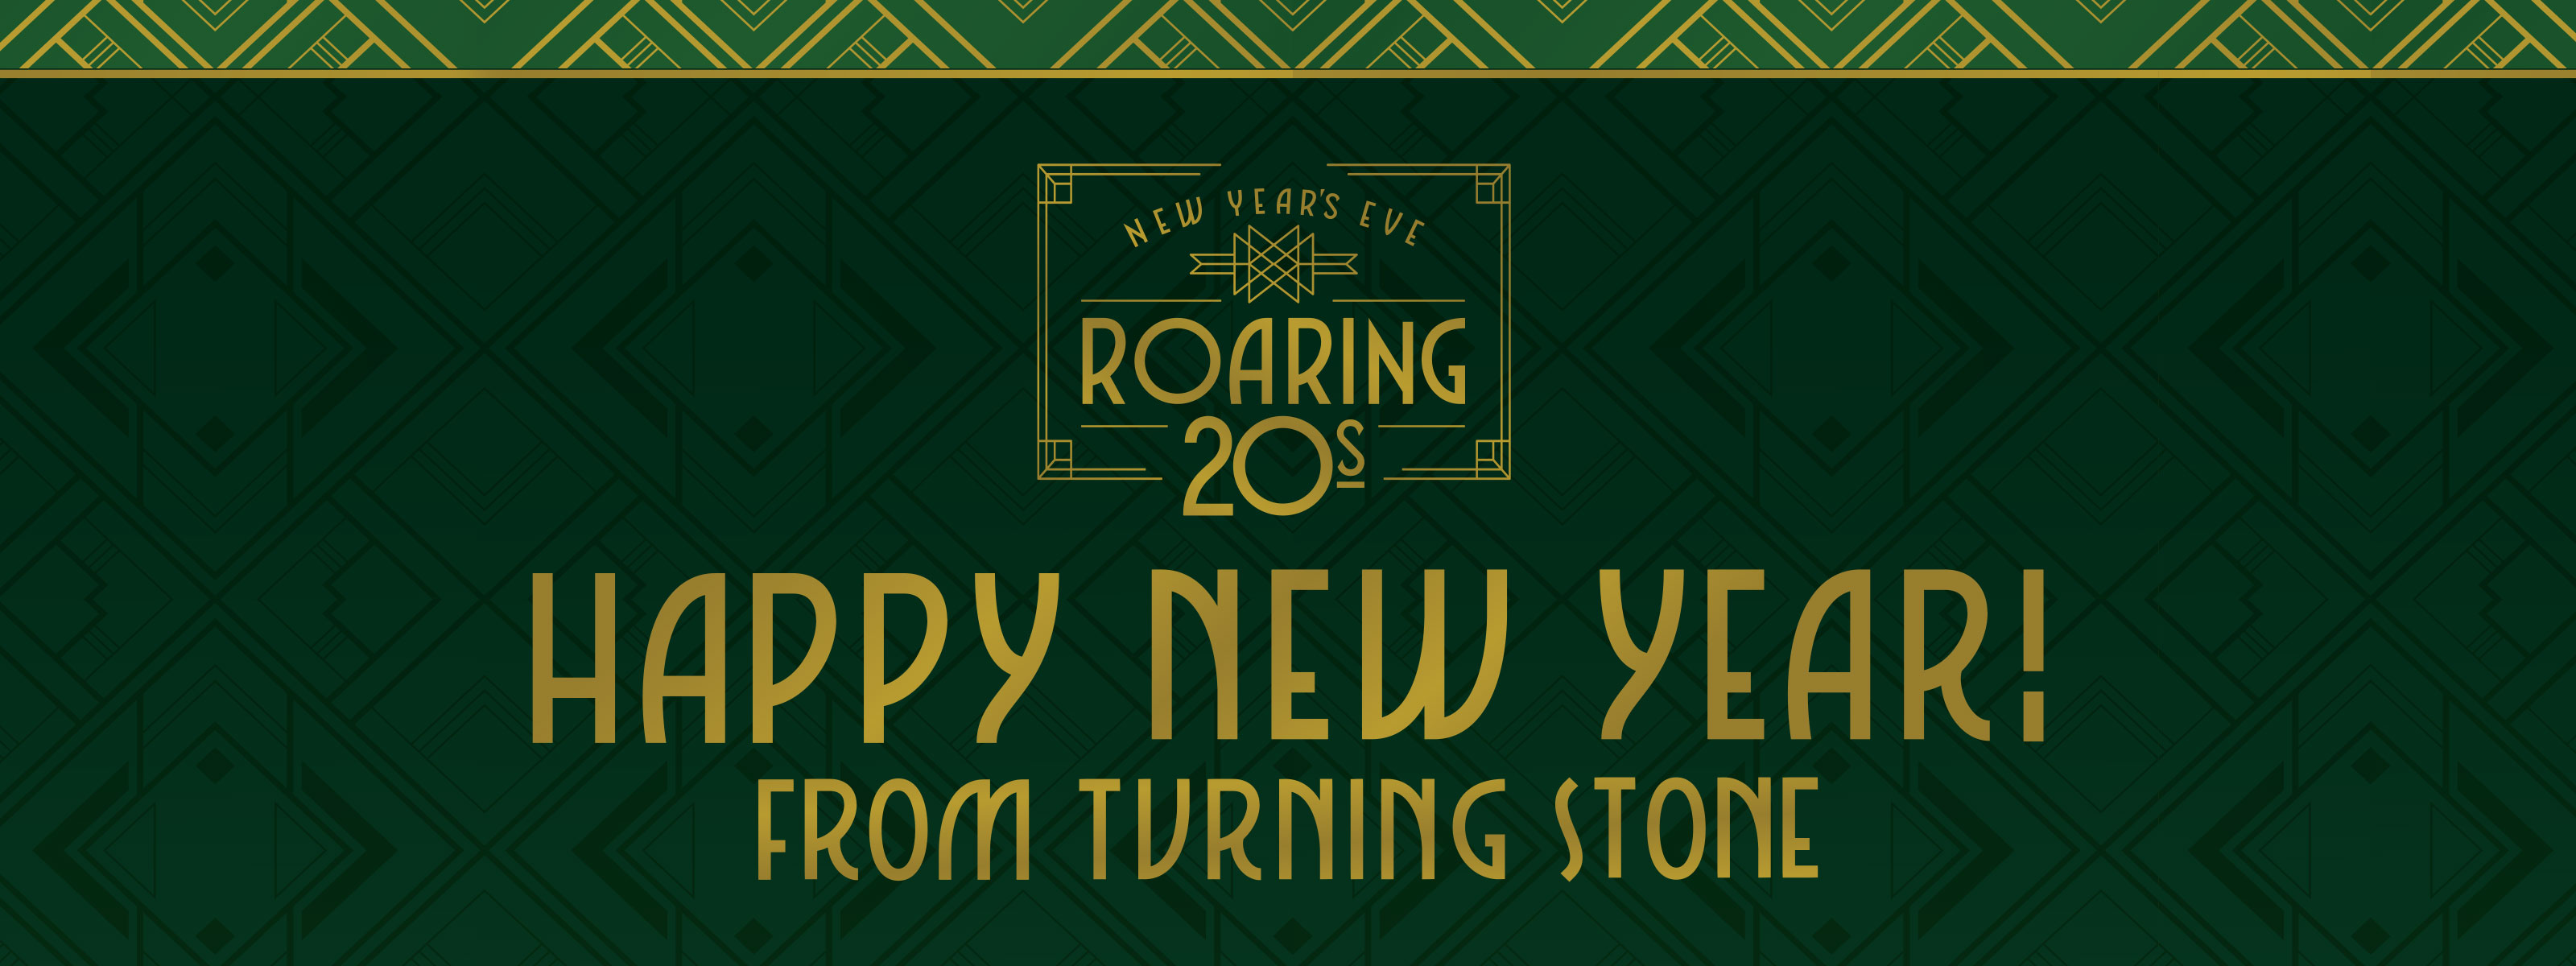 New Year's Eve Roaring 20s